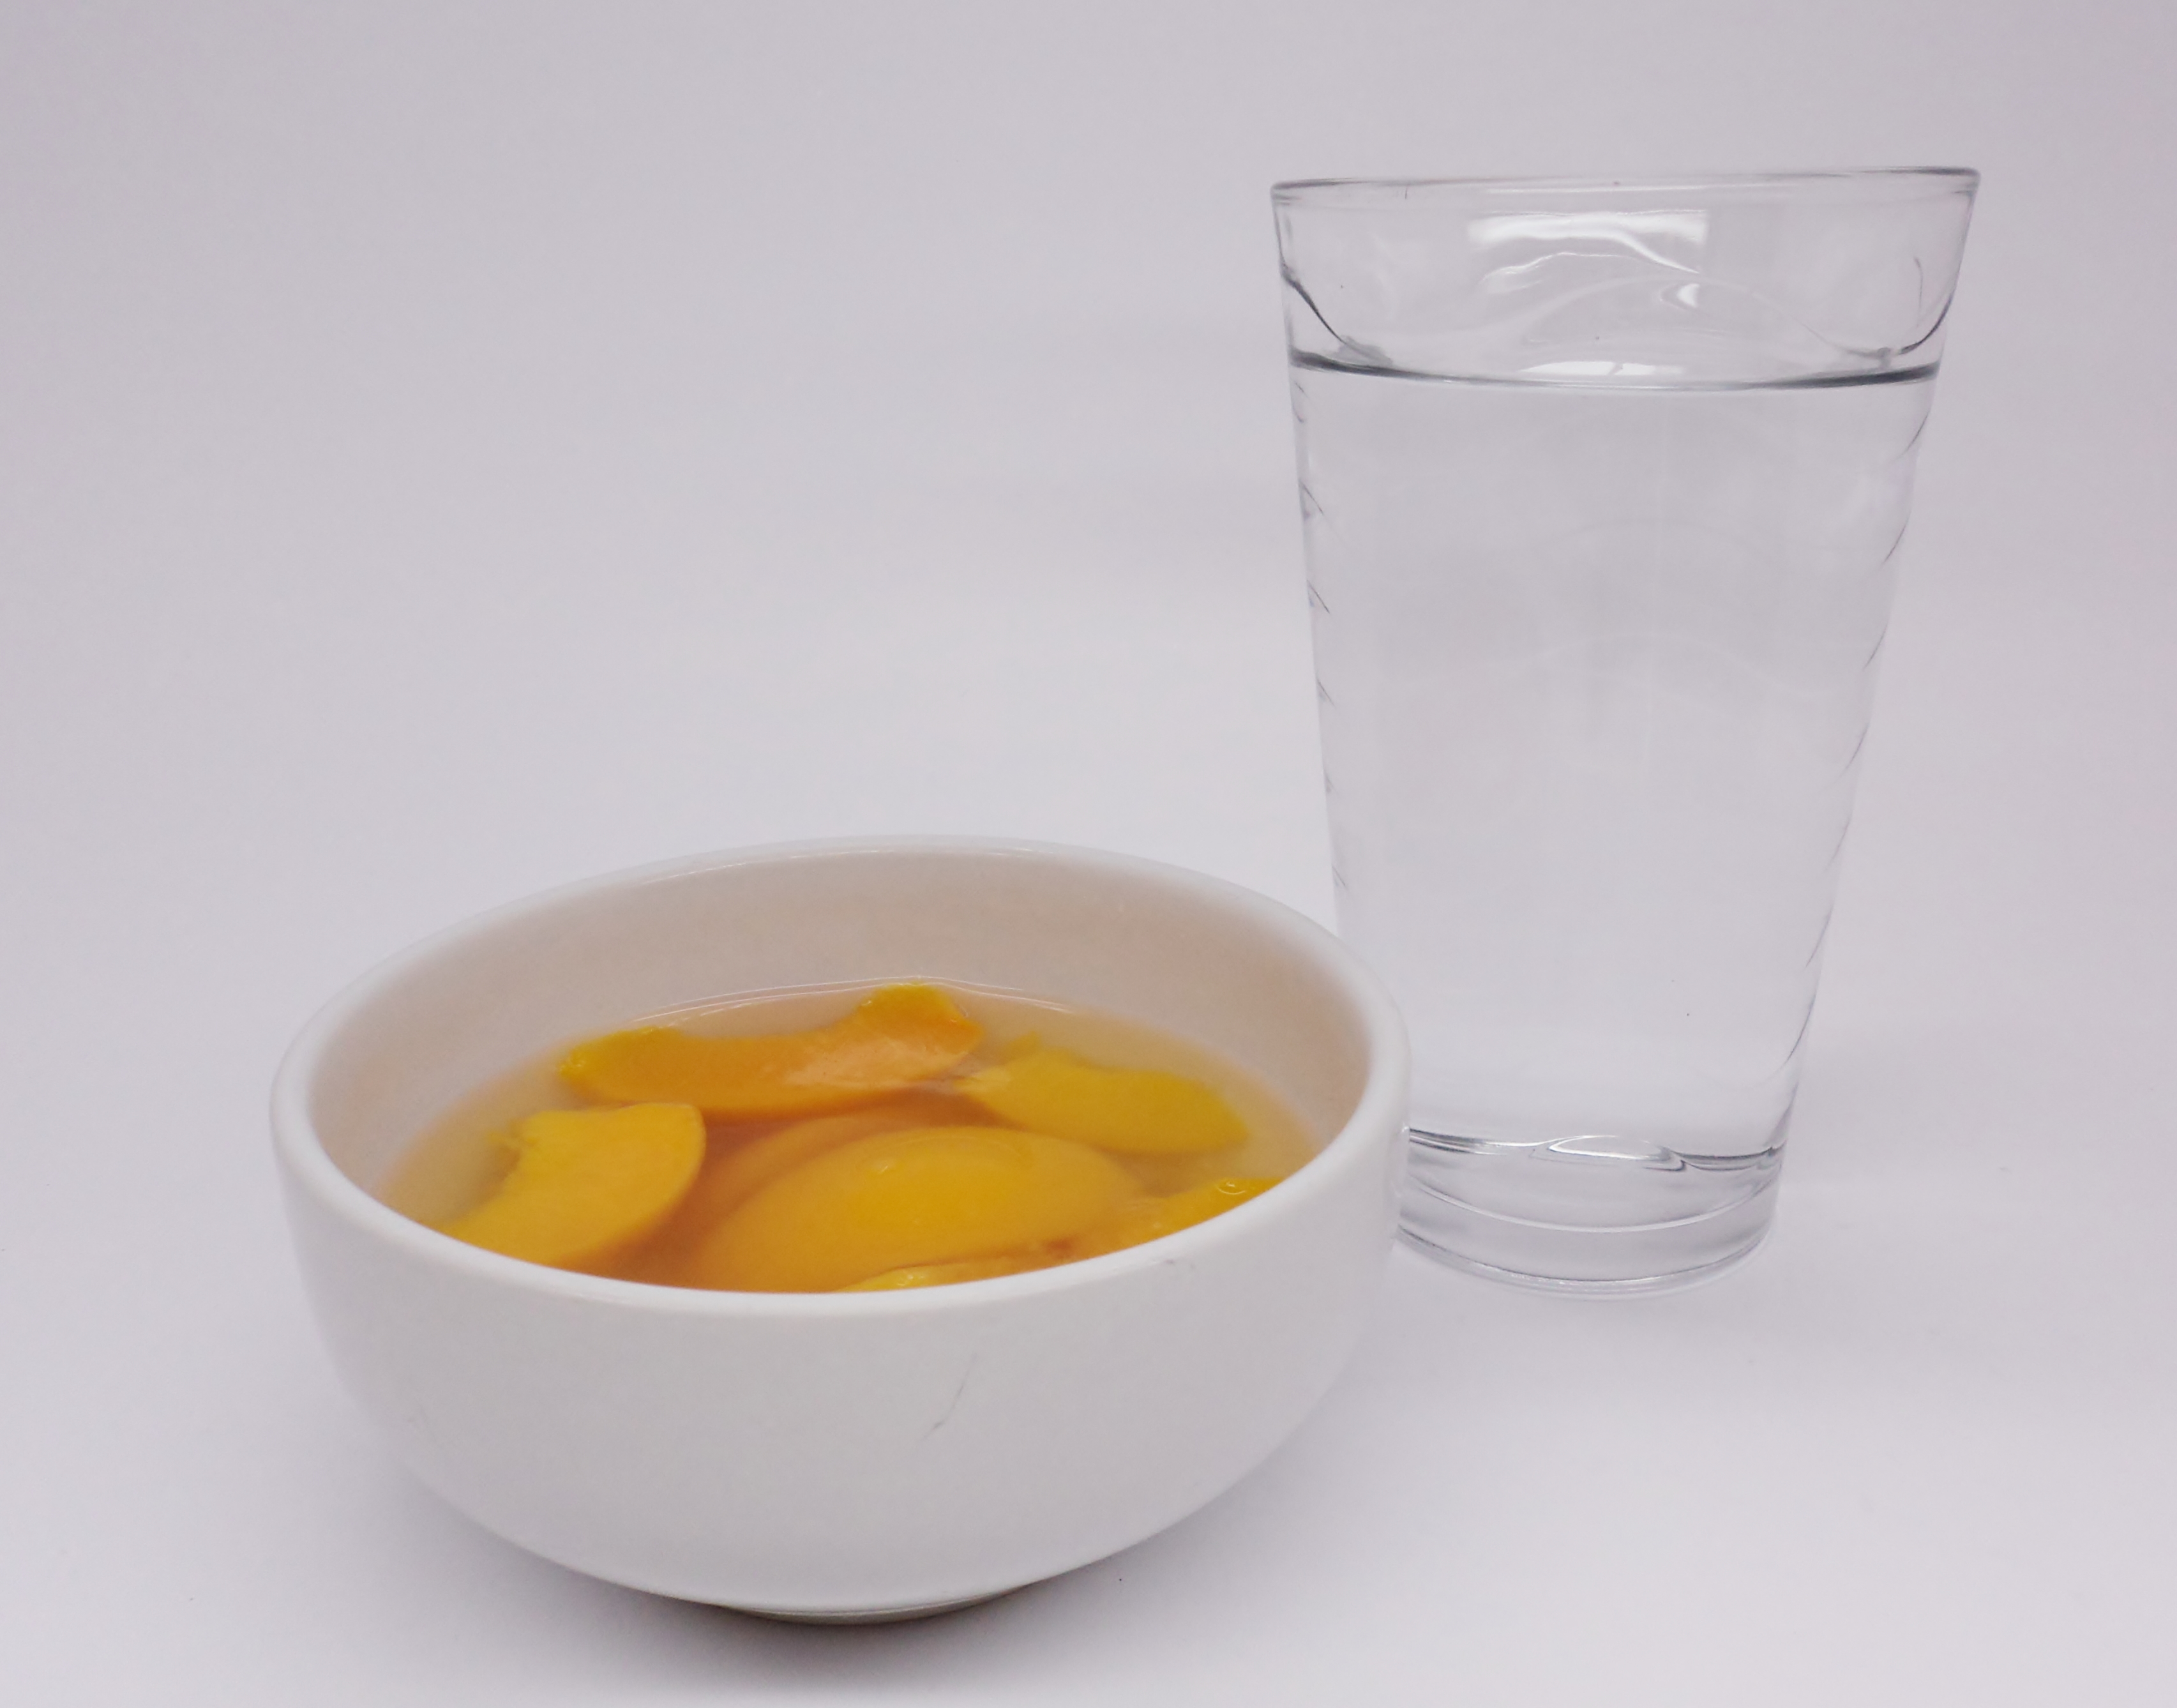 Water and fruit, Healthy, Nutrition, Water, Glass, HQ Photo